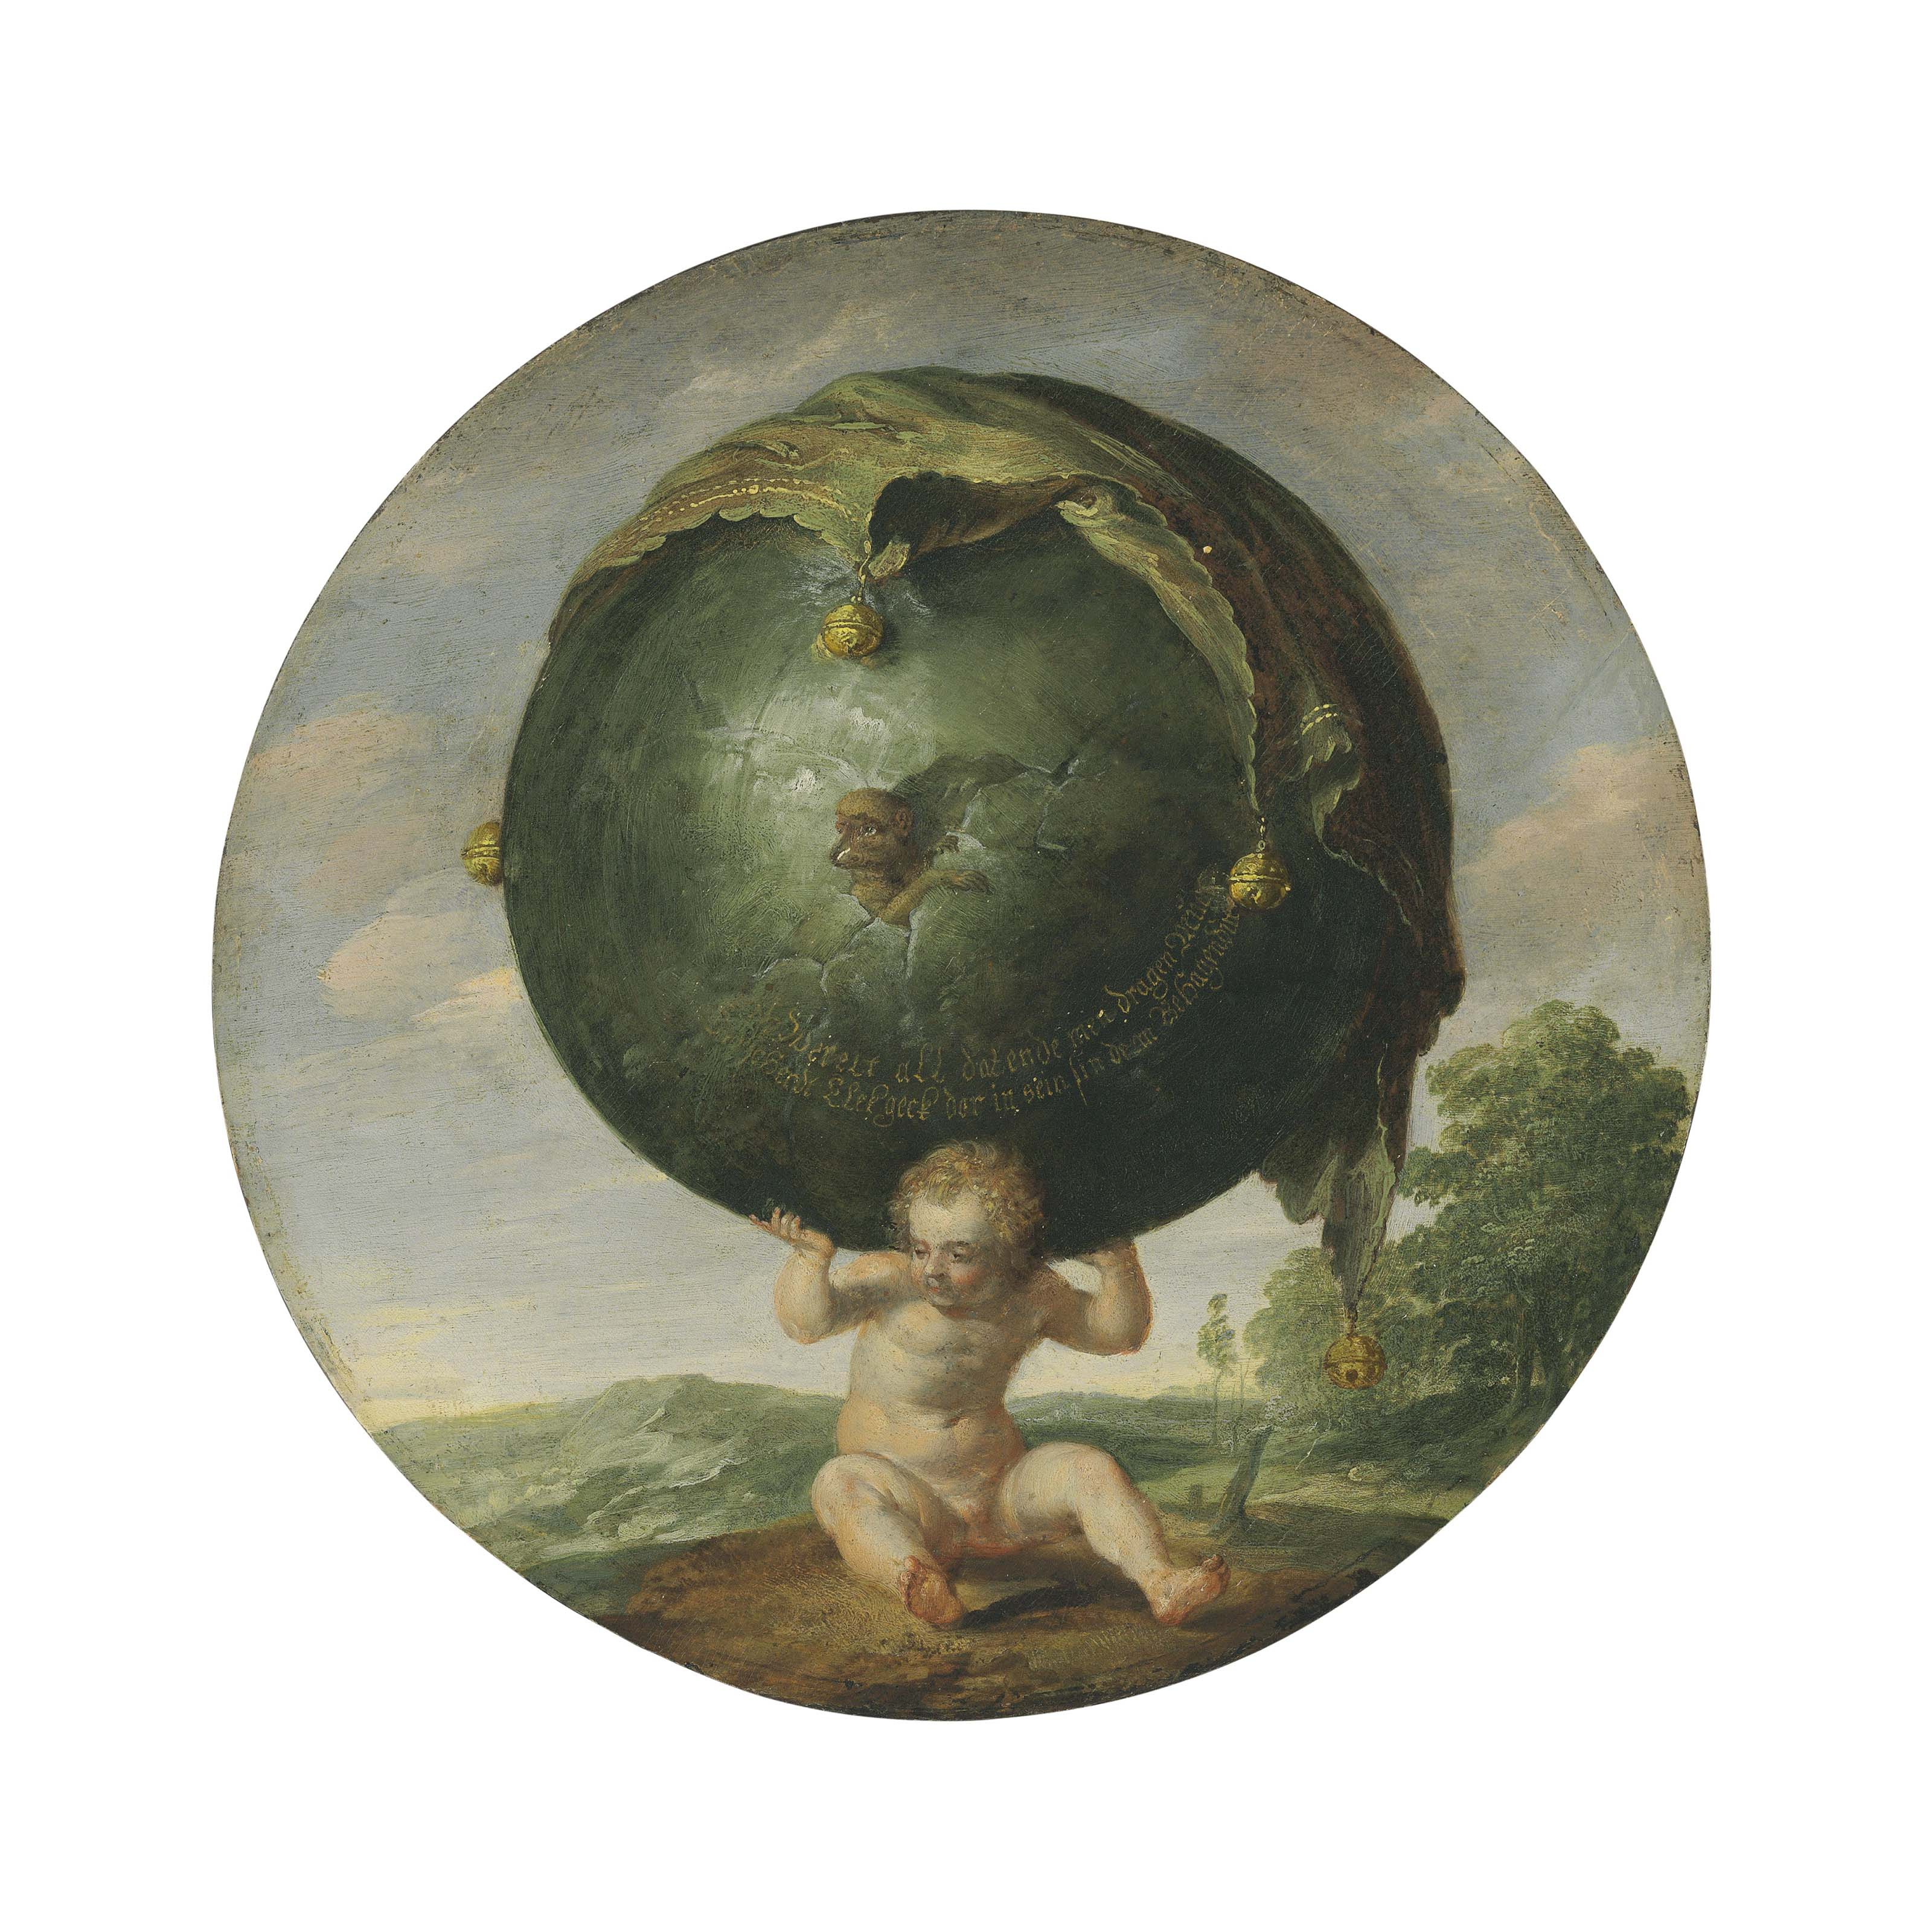 Allegory of the Foolishness of the World